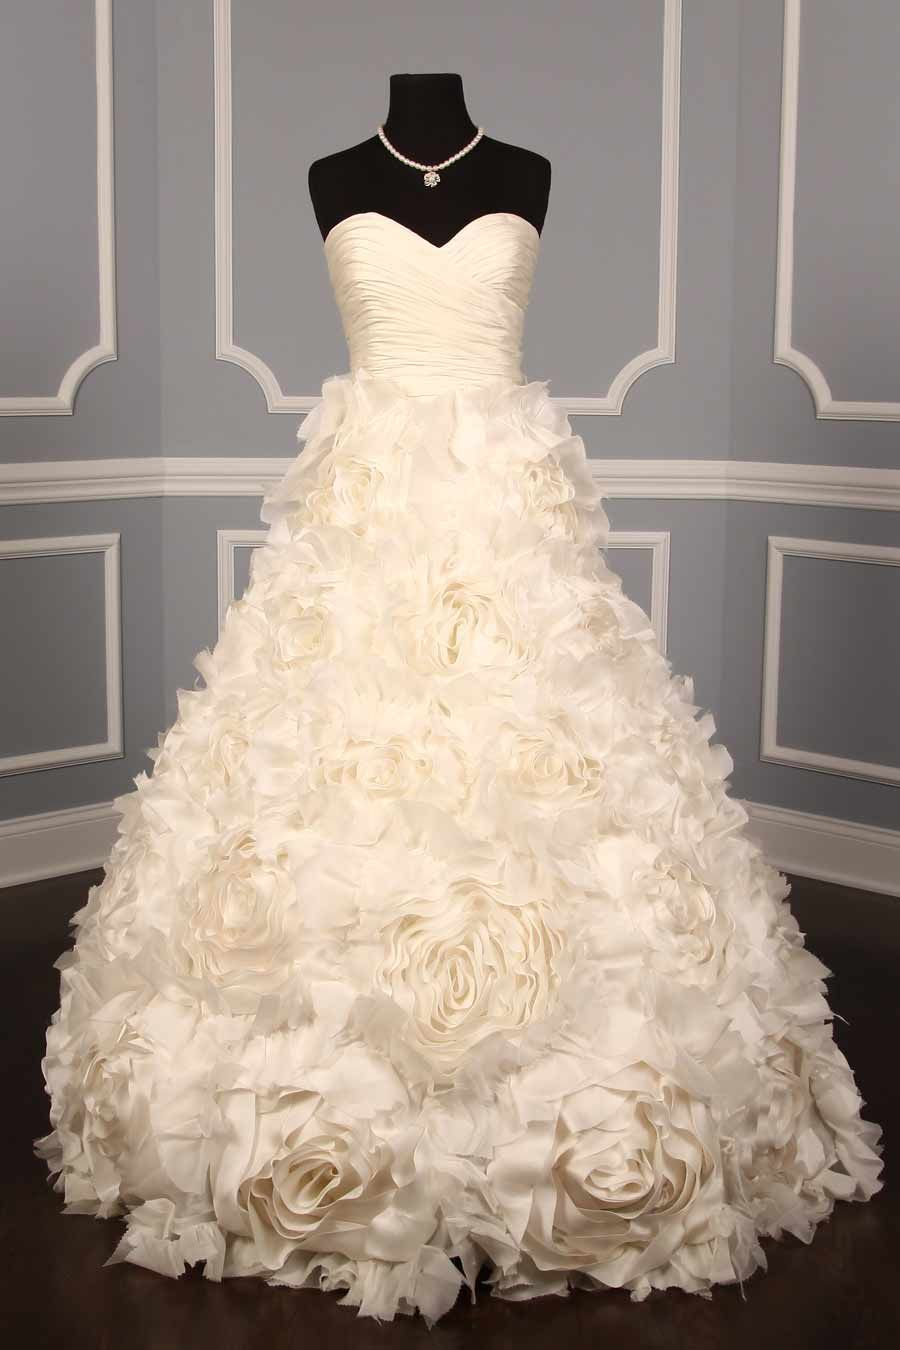 Monique Lhuillier Sunday Rose Couture Bridal Gown So Pretty In